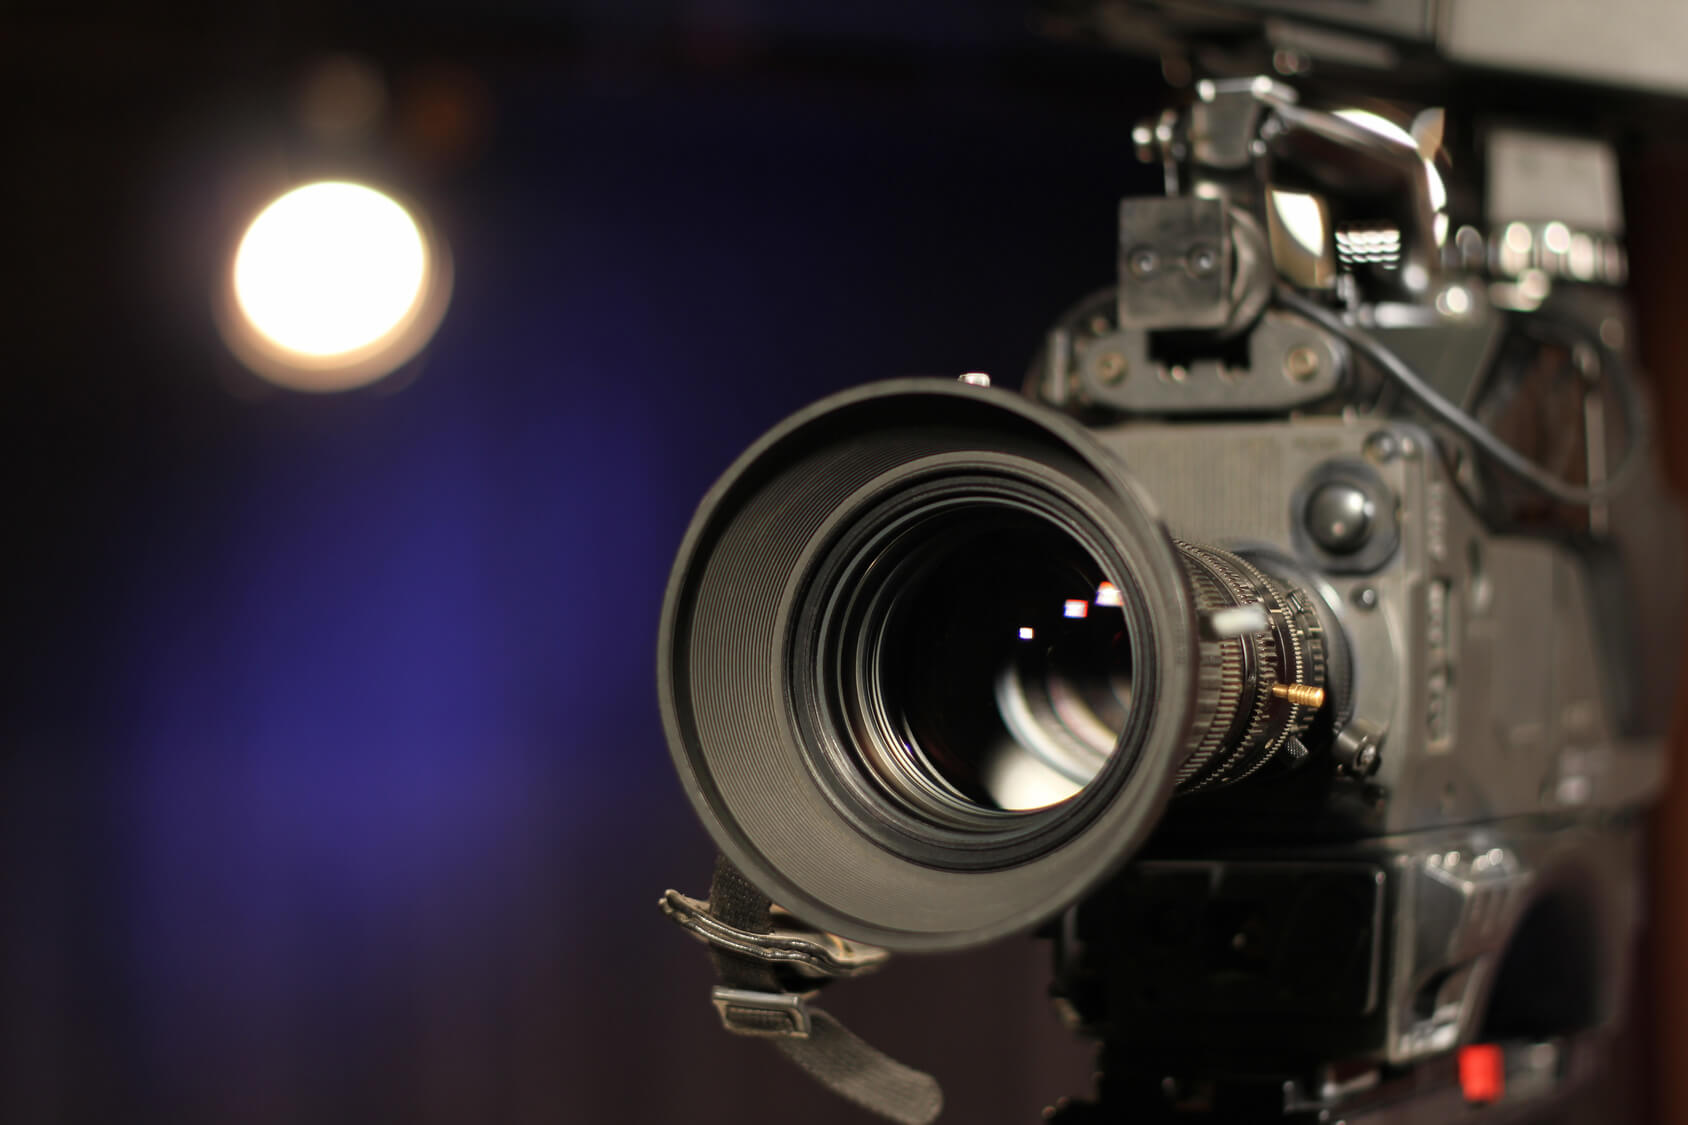 Introducing the Camera for morning announcements © Fotolia / branex